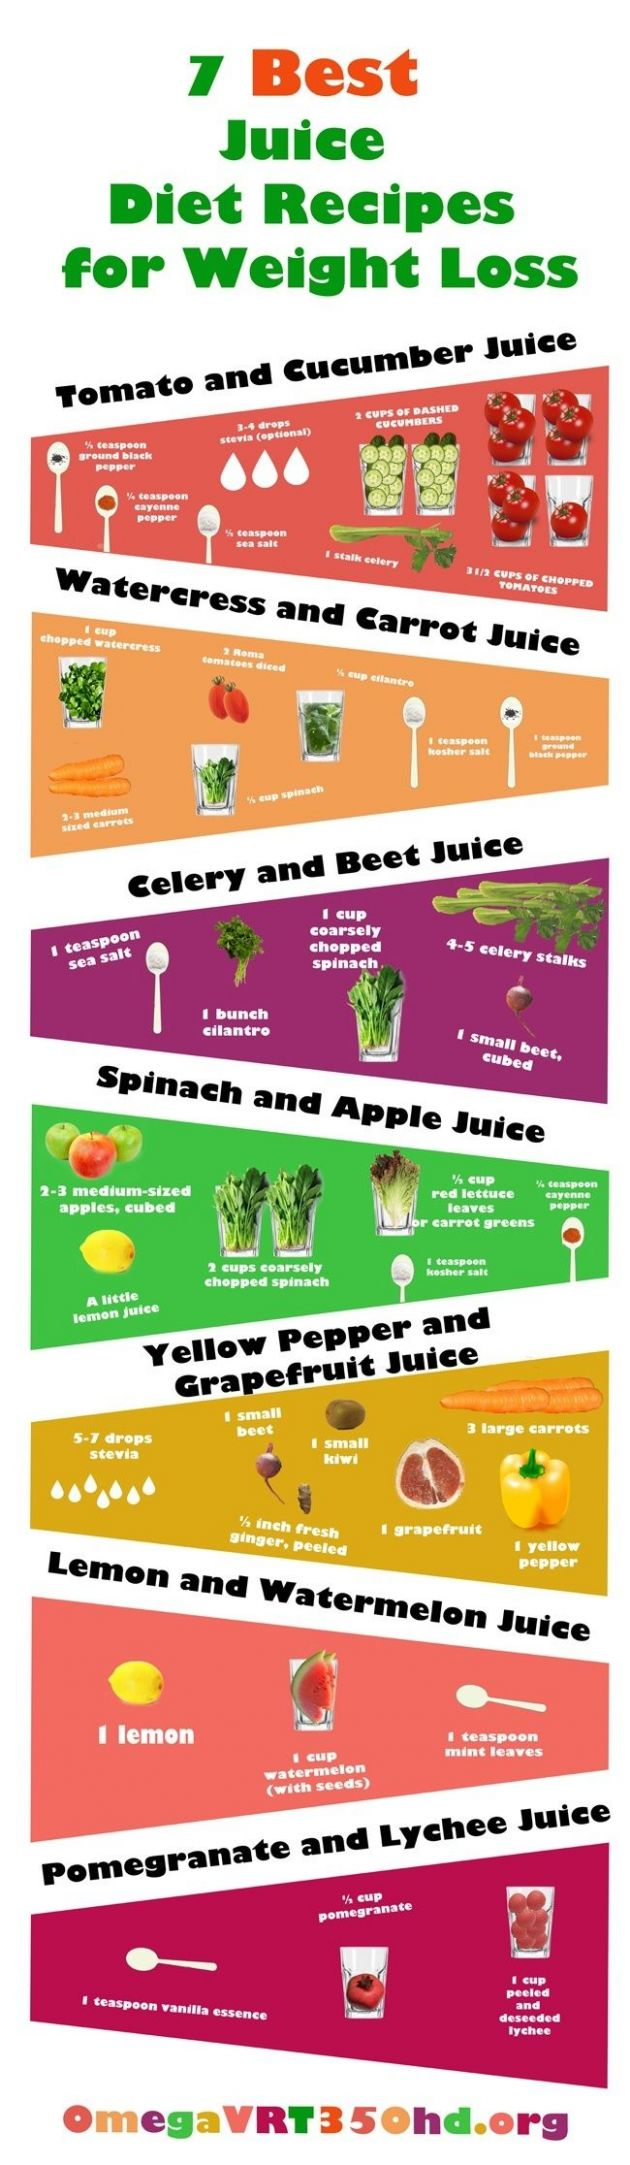 11 Easy and Tasty Juicing Recipes for Weight Loss (Infographic ..